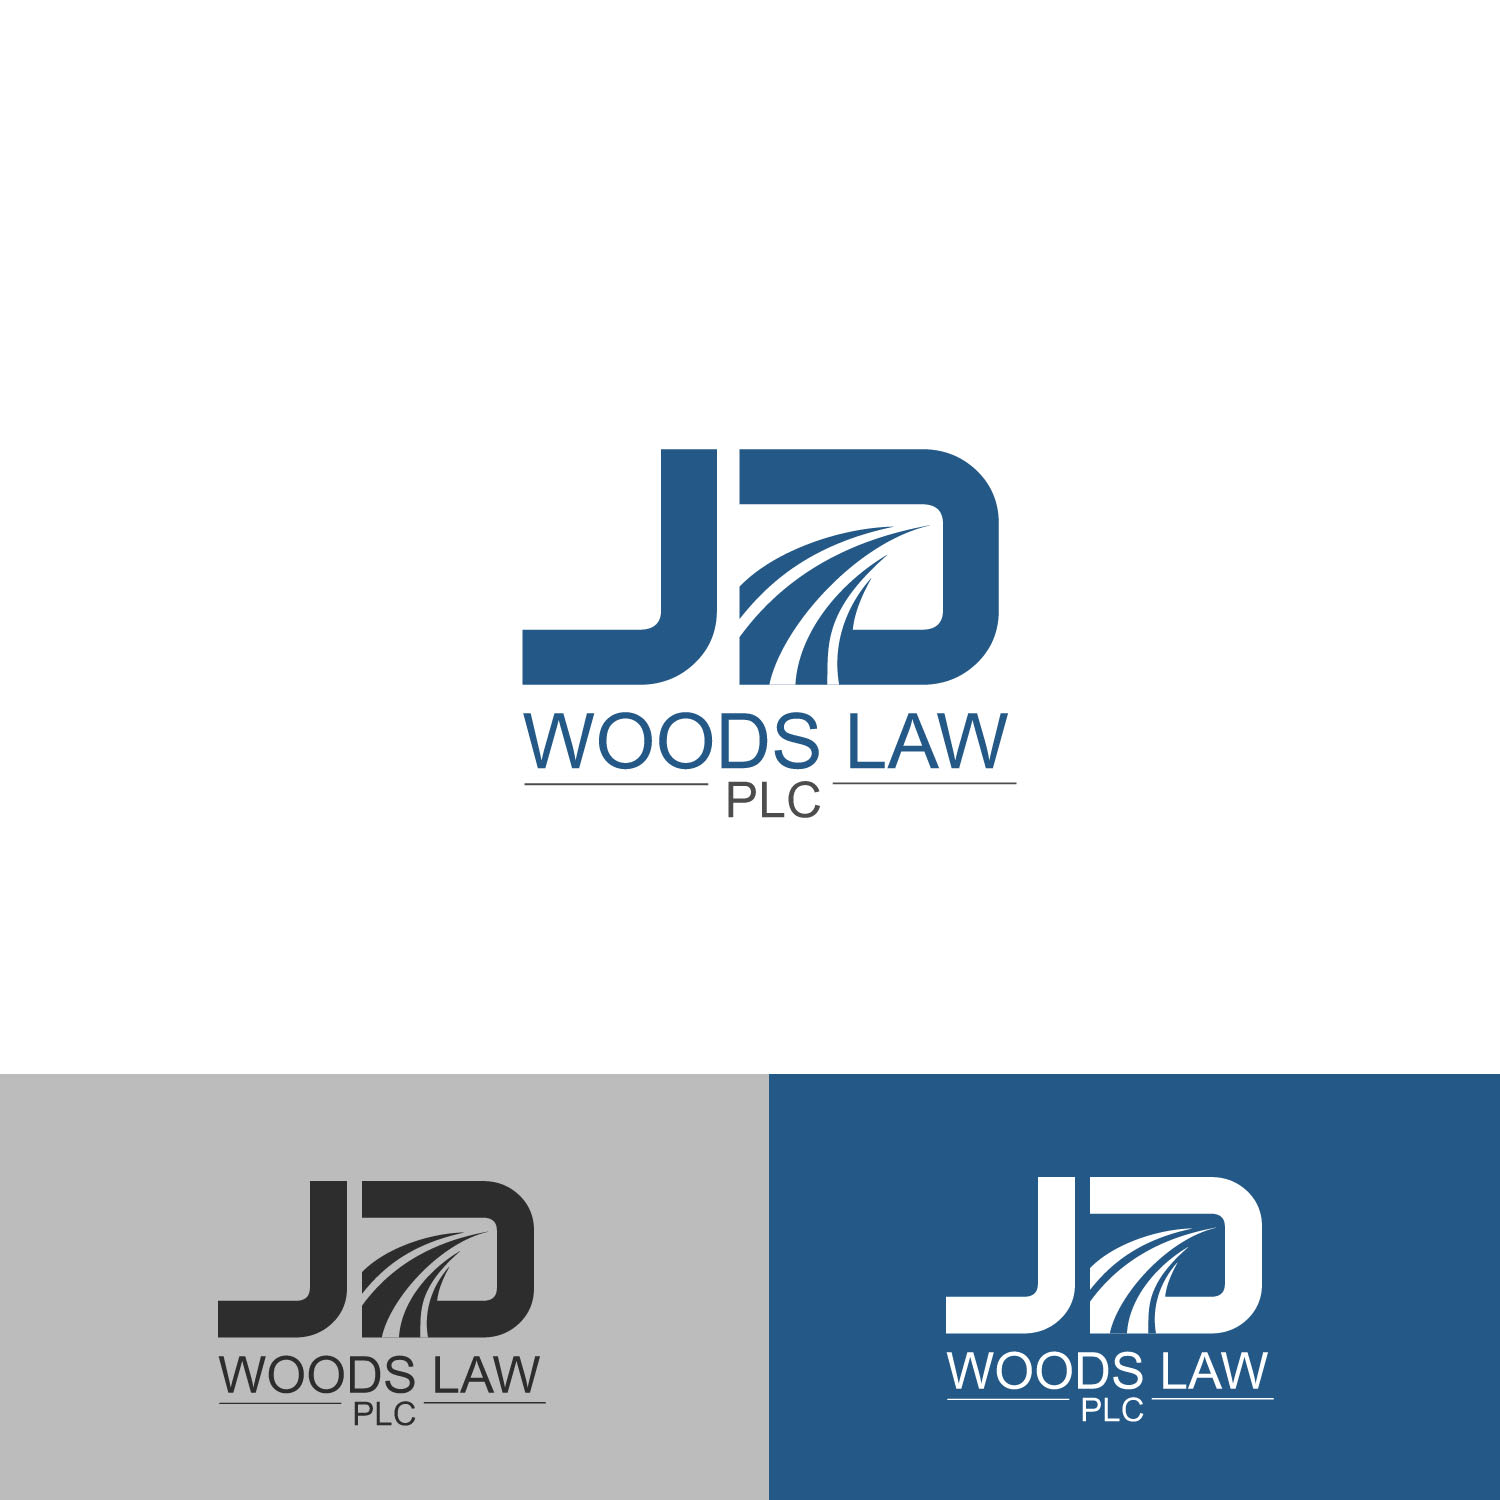 serious professional law firm logo design for jd woods law plc by art creators design 12841457 designcrowd